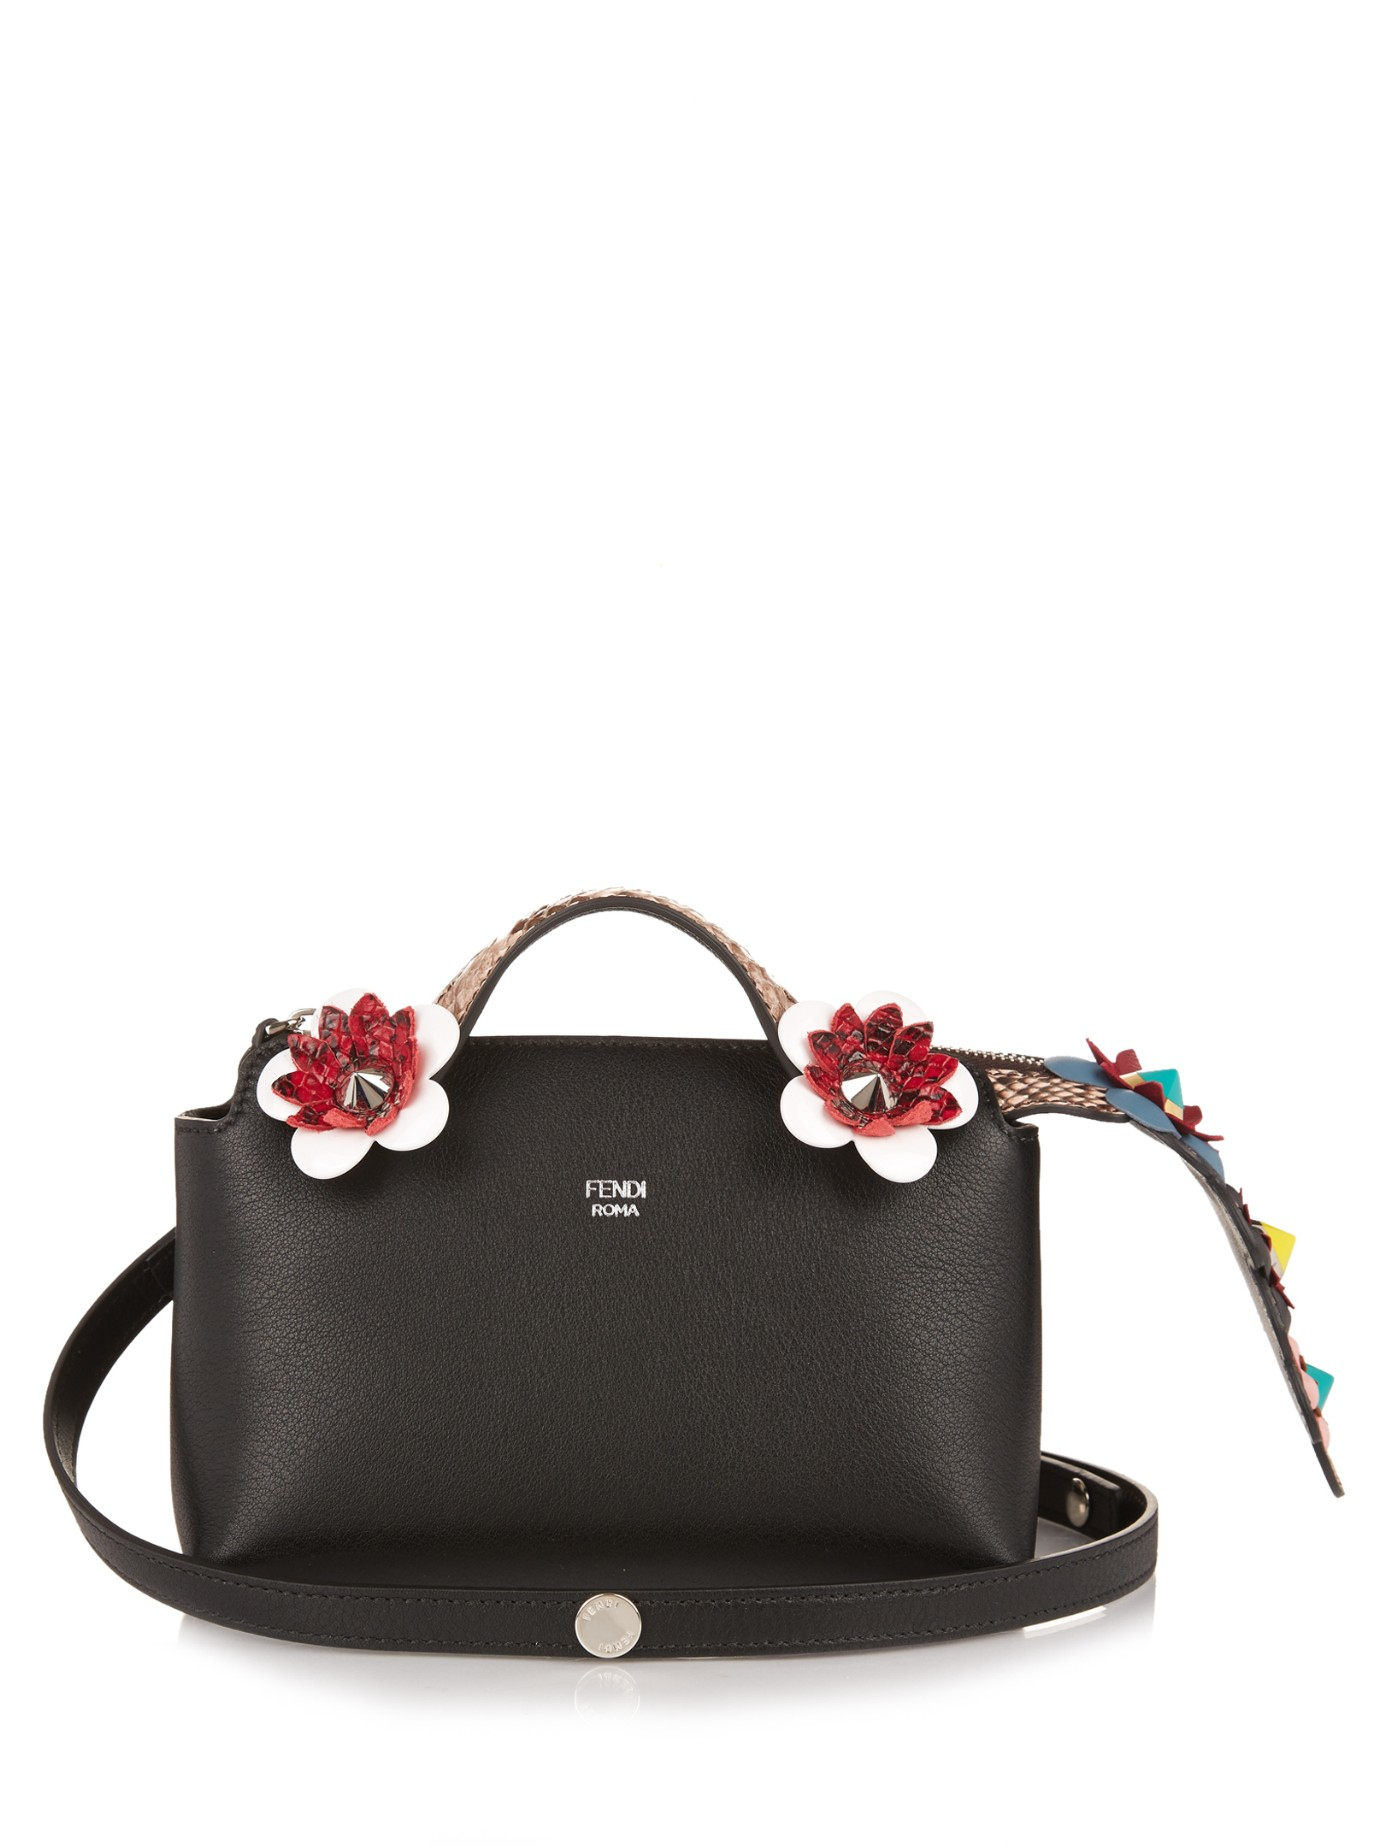 Lyst - Fendi Women s By The Way Mini-satchel in Black 8ccb012011b42